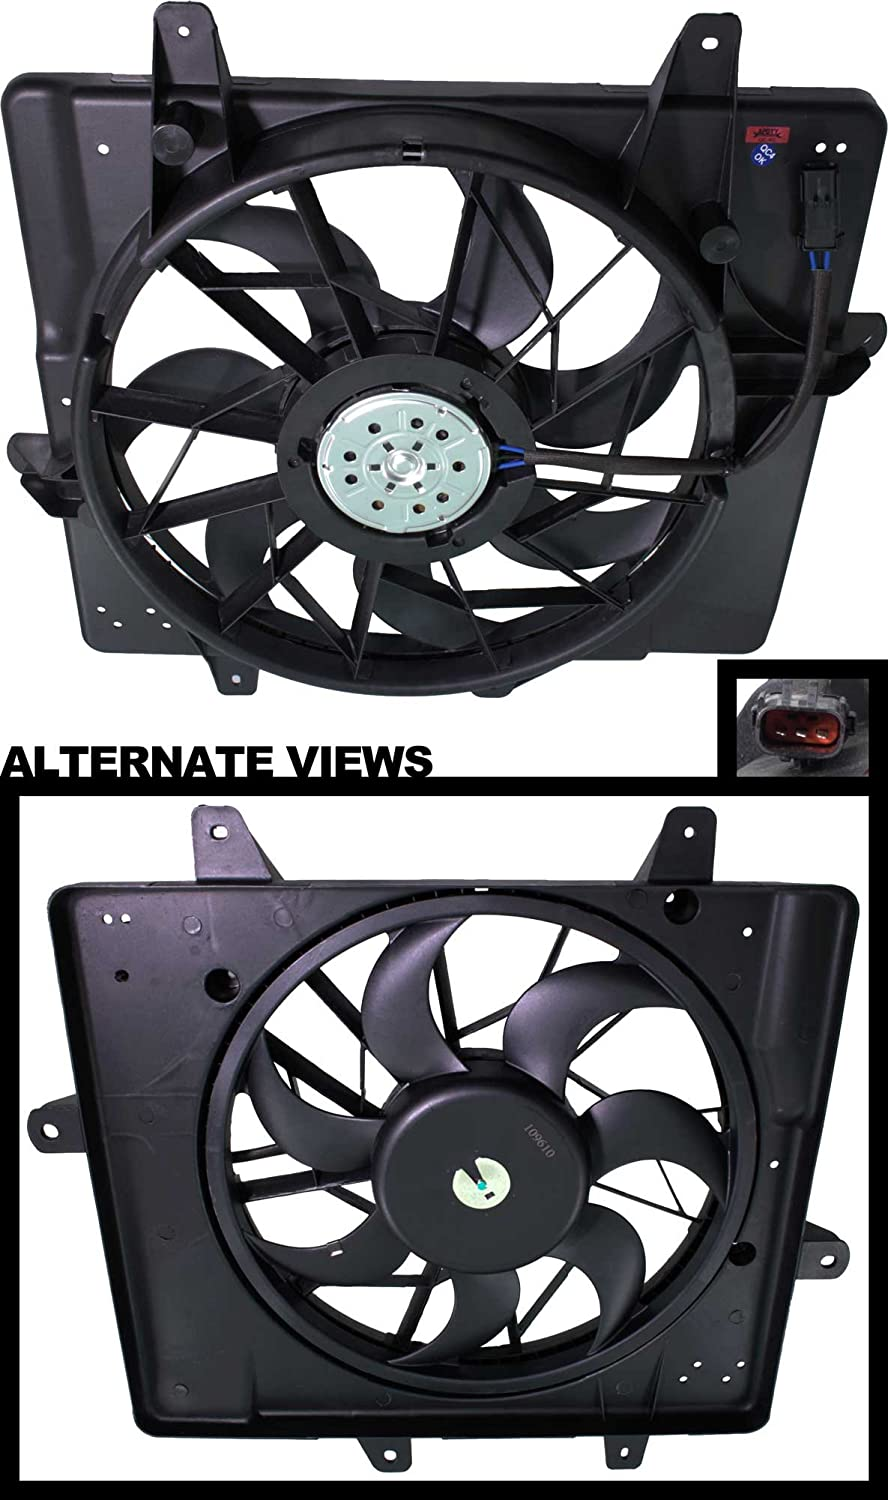 APDTY 731133 Radiator Cooling Fan Assembly Fits 2001-2005 Chrysler PT Cruiser (Except Turbo Models) & Fits 2006-2008 PT Cruiser Models w/3-Pin Harness (Except Turbo) (Replaces 05017407AB, 5017407AB)